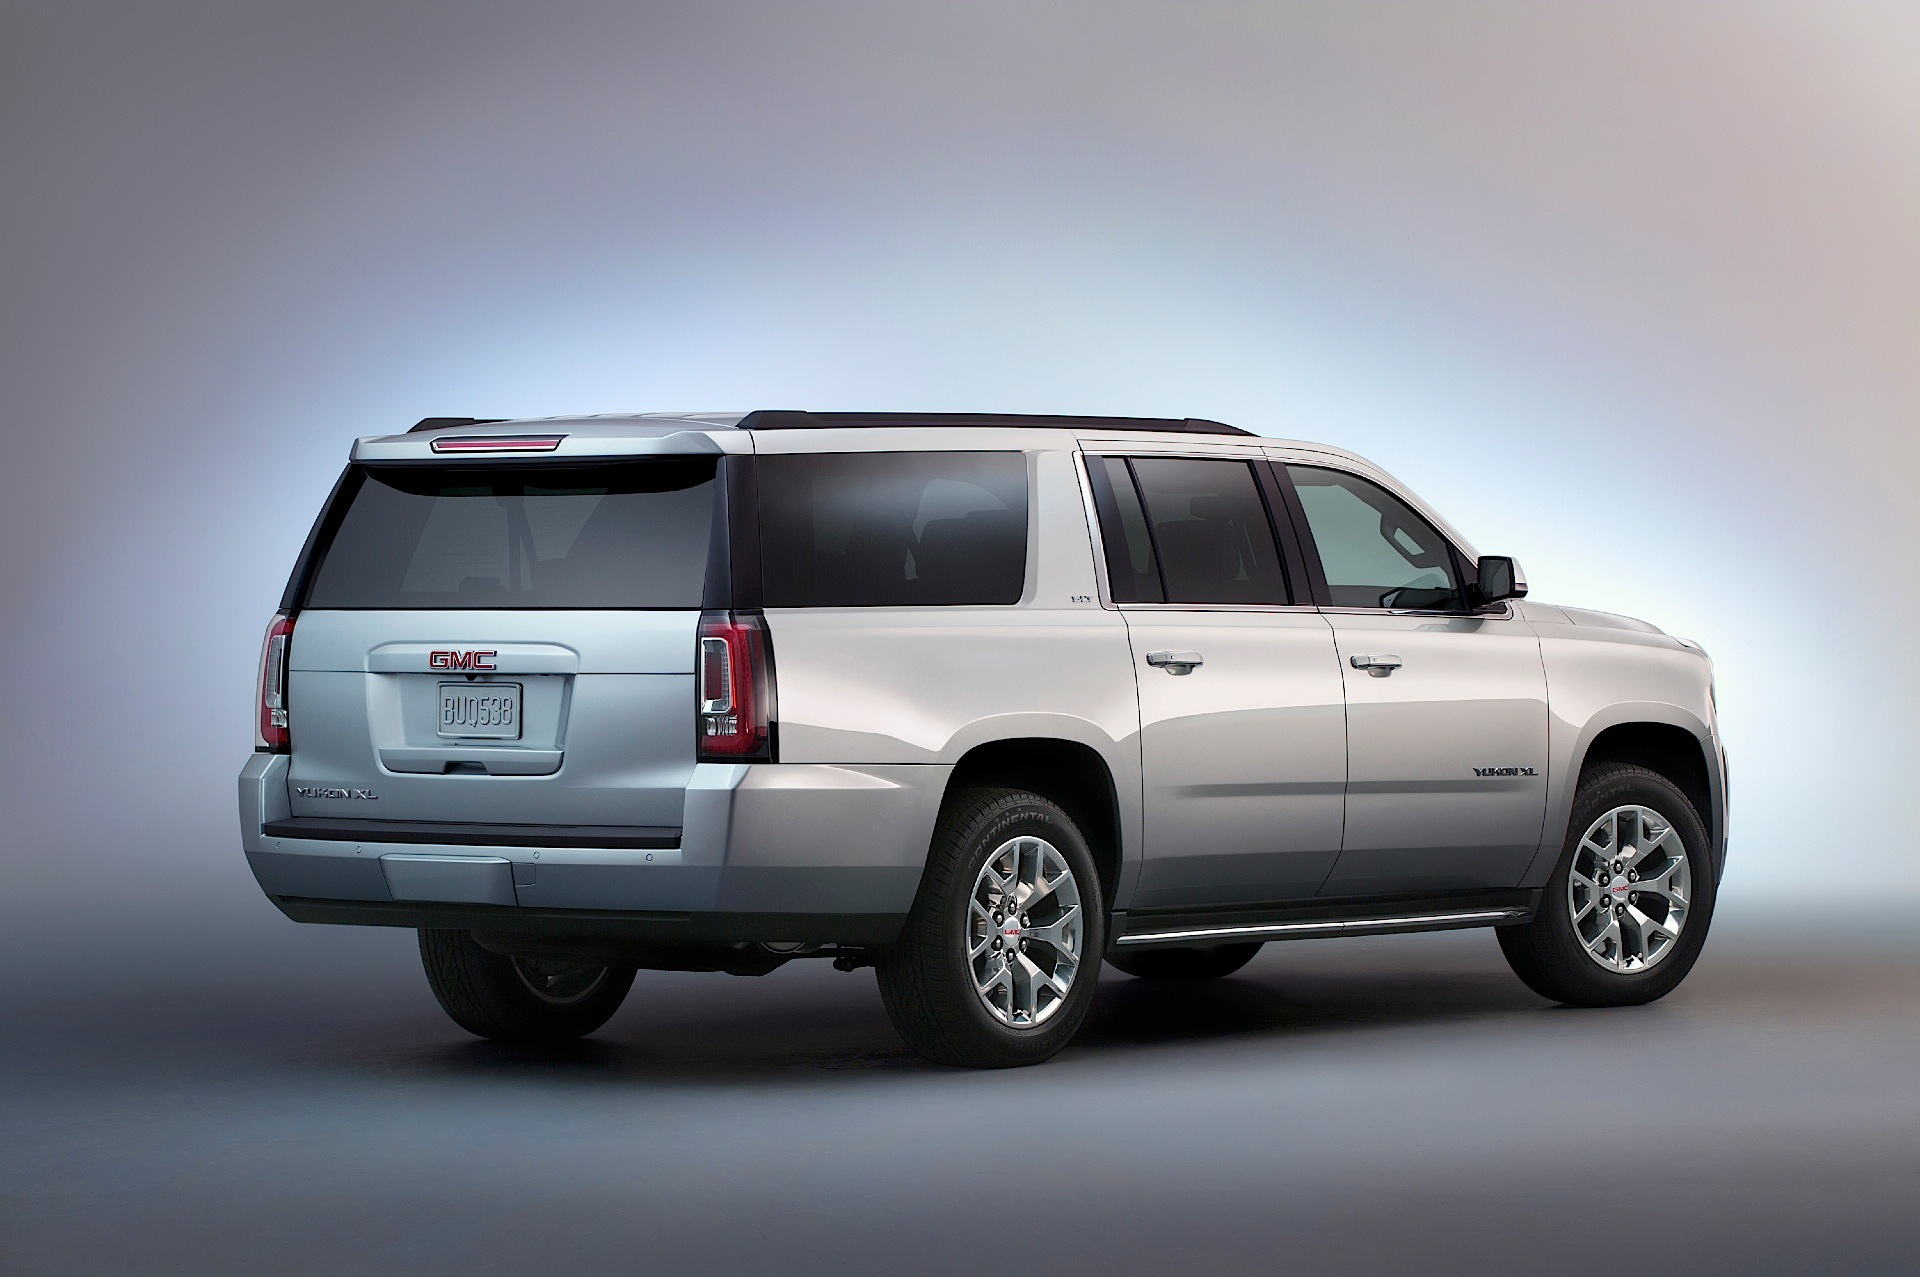 gmc yukon xl specs 2014 2015 2016 2017 2018 autoevolution. Black Bedroom Furniture Sets. Home Design Ideas